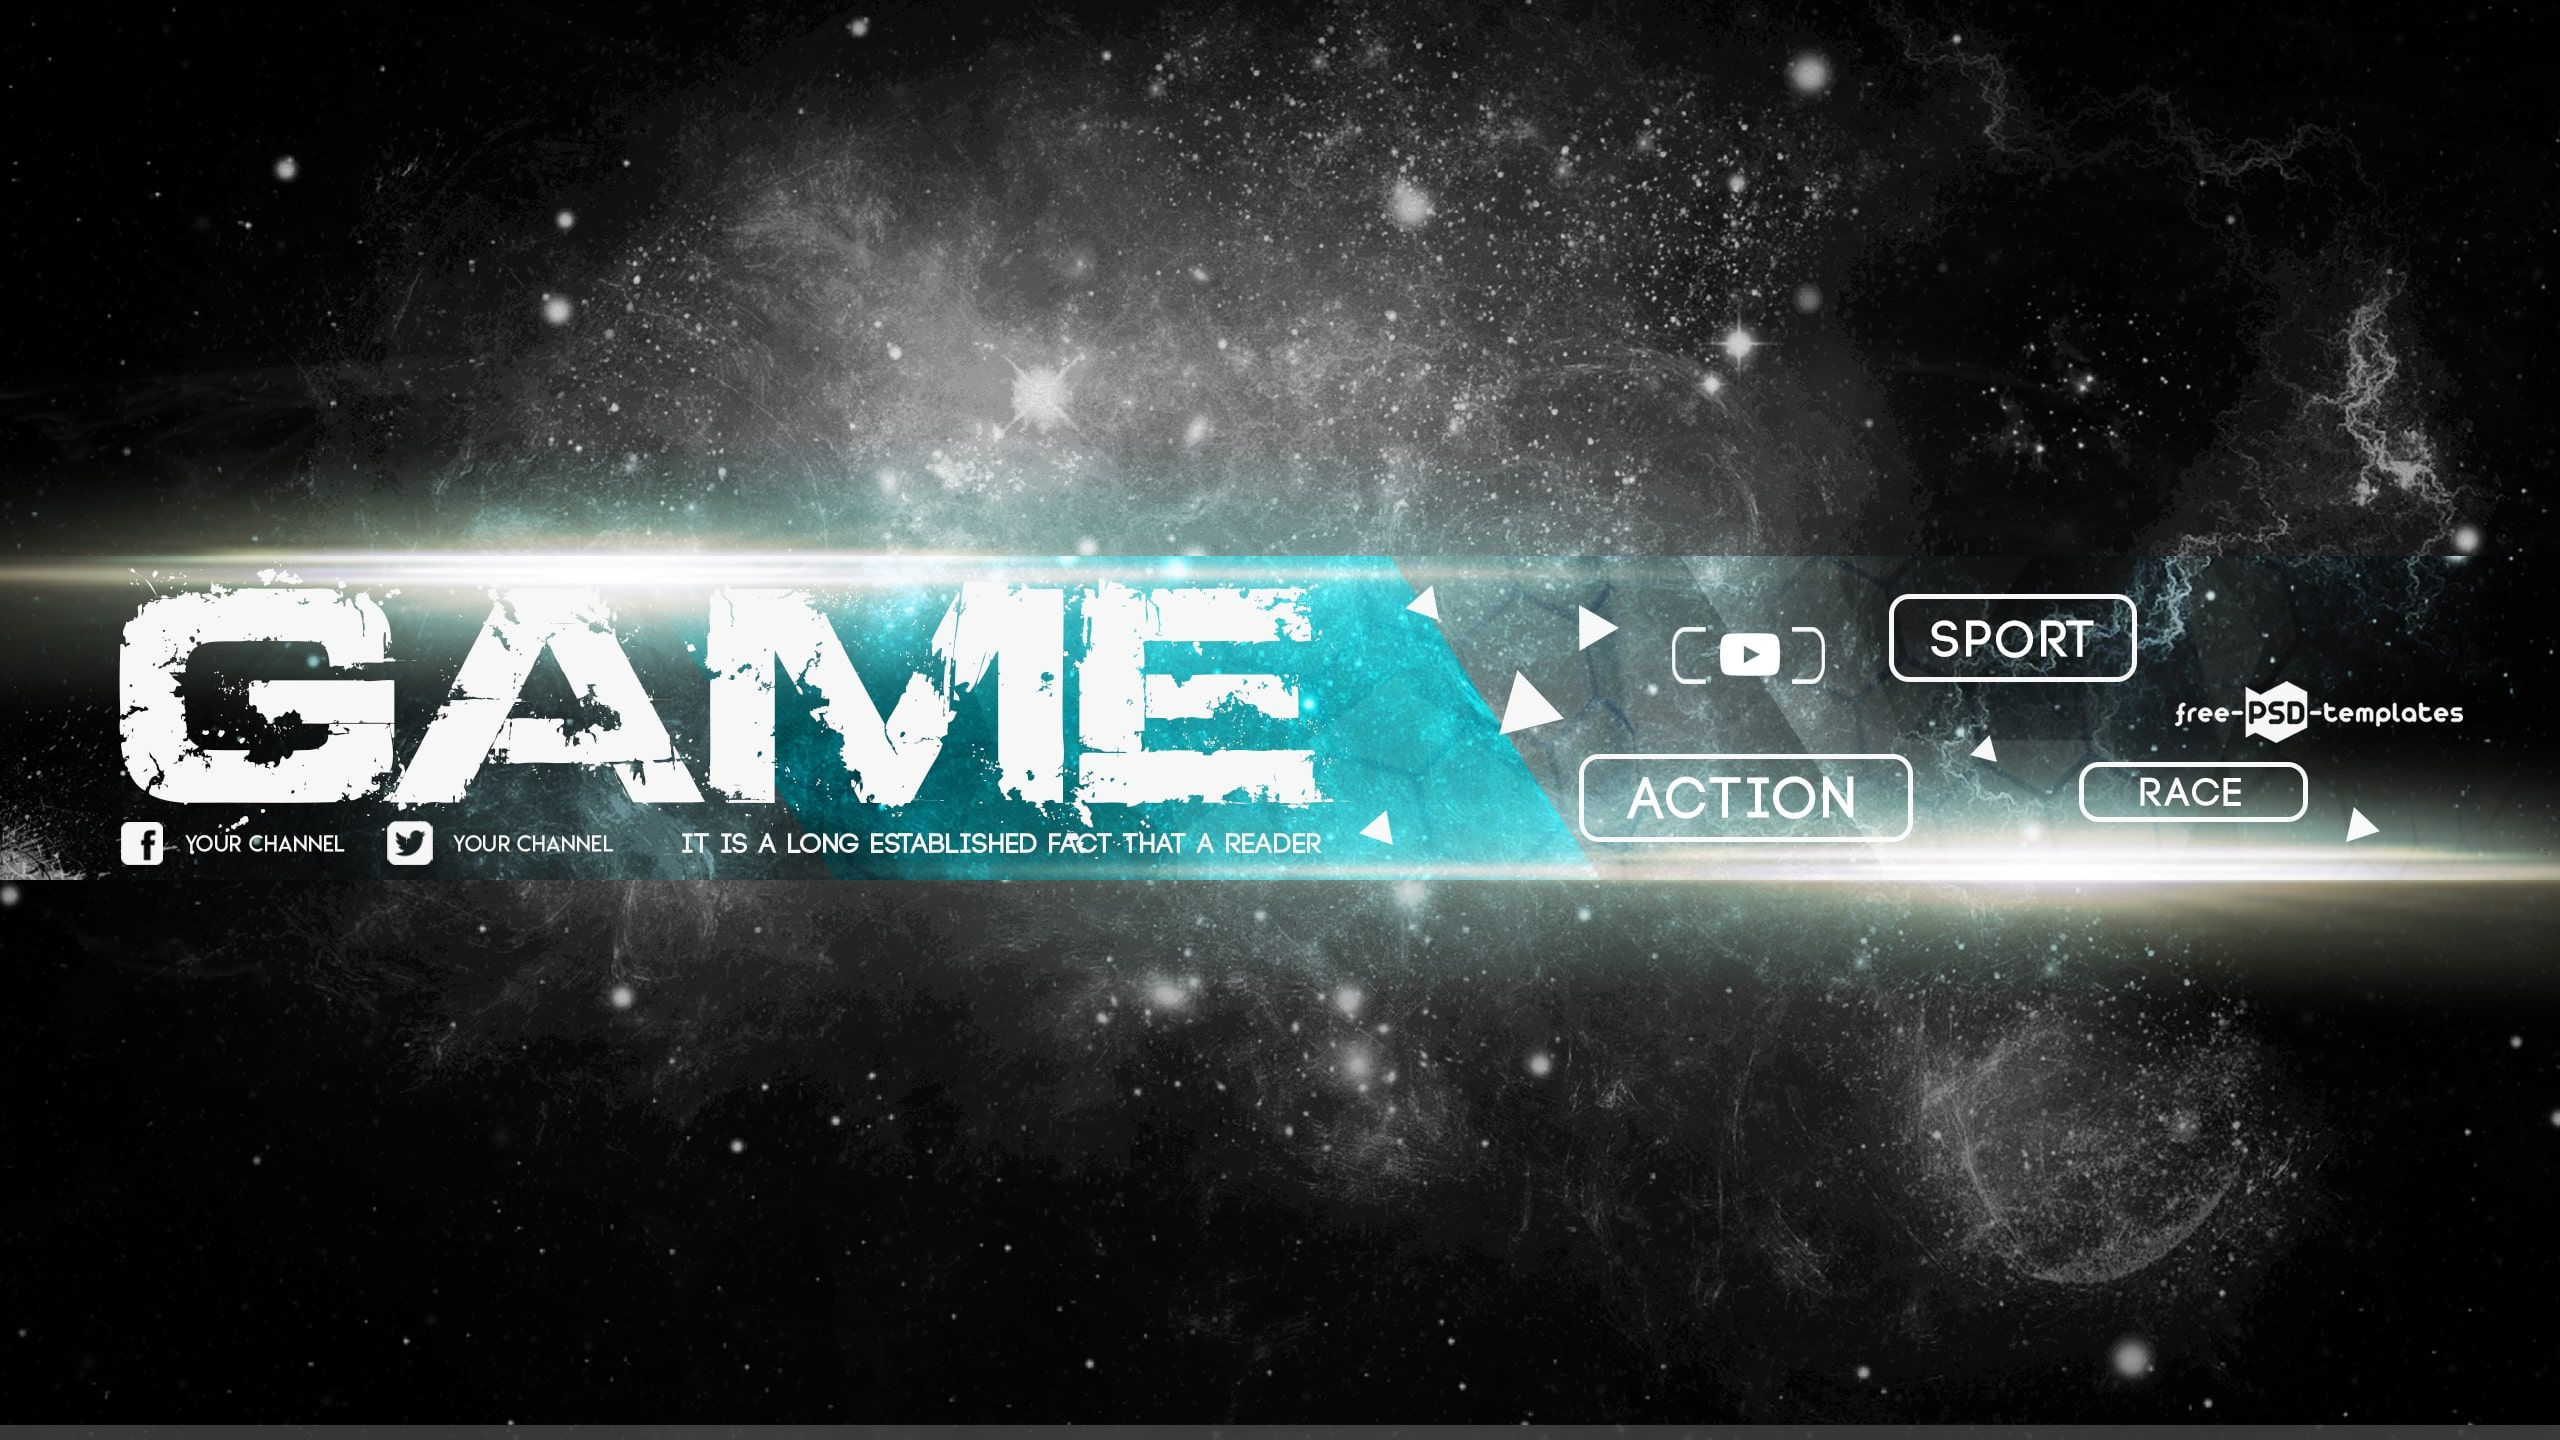 Free Game Youtube Banner Template Free Psd Templates In 2020 Youtube Banner Template Banner Template Psd Template Free